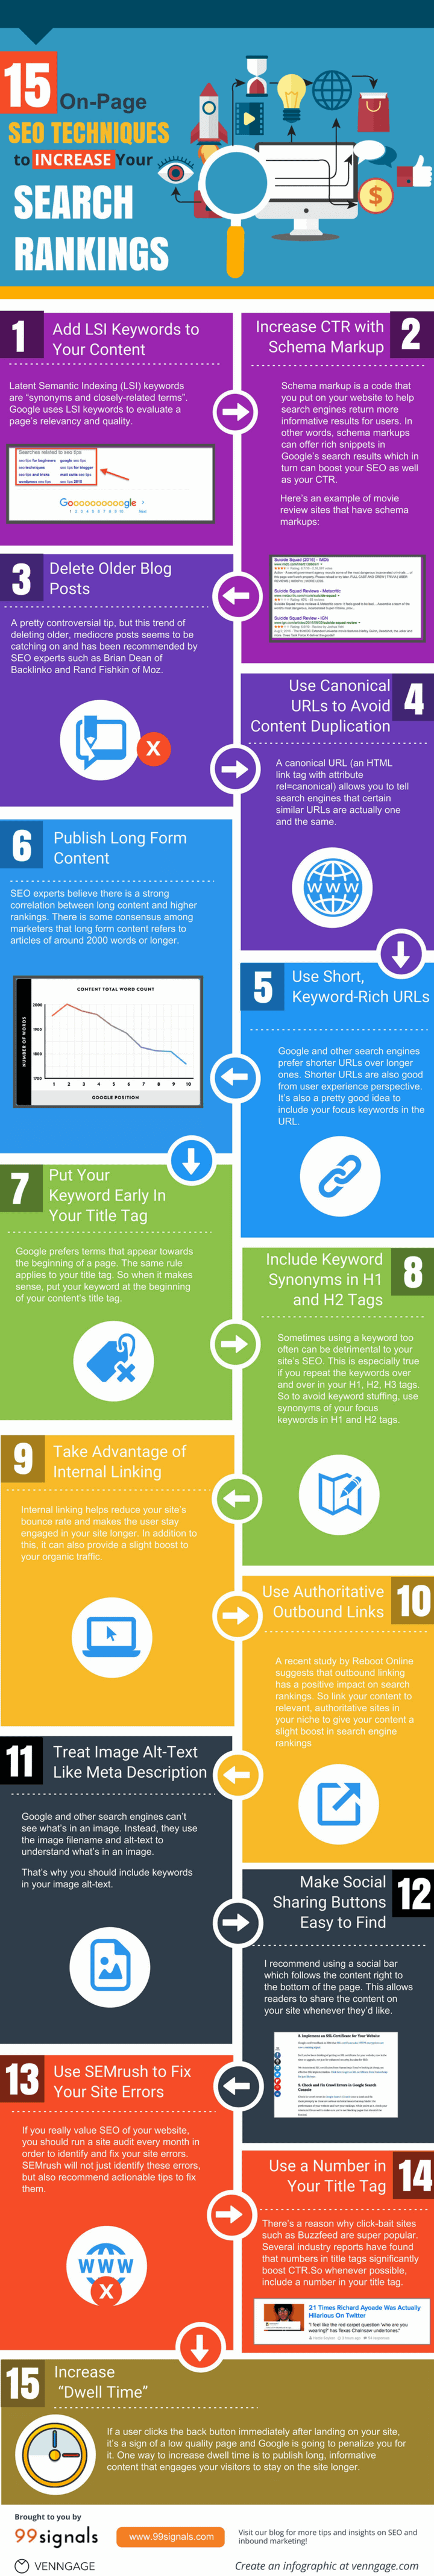 On Page SEO Infographic by 99signals.com